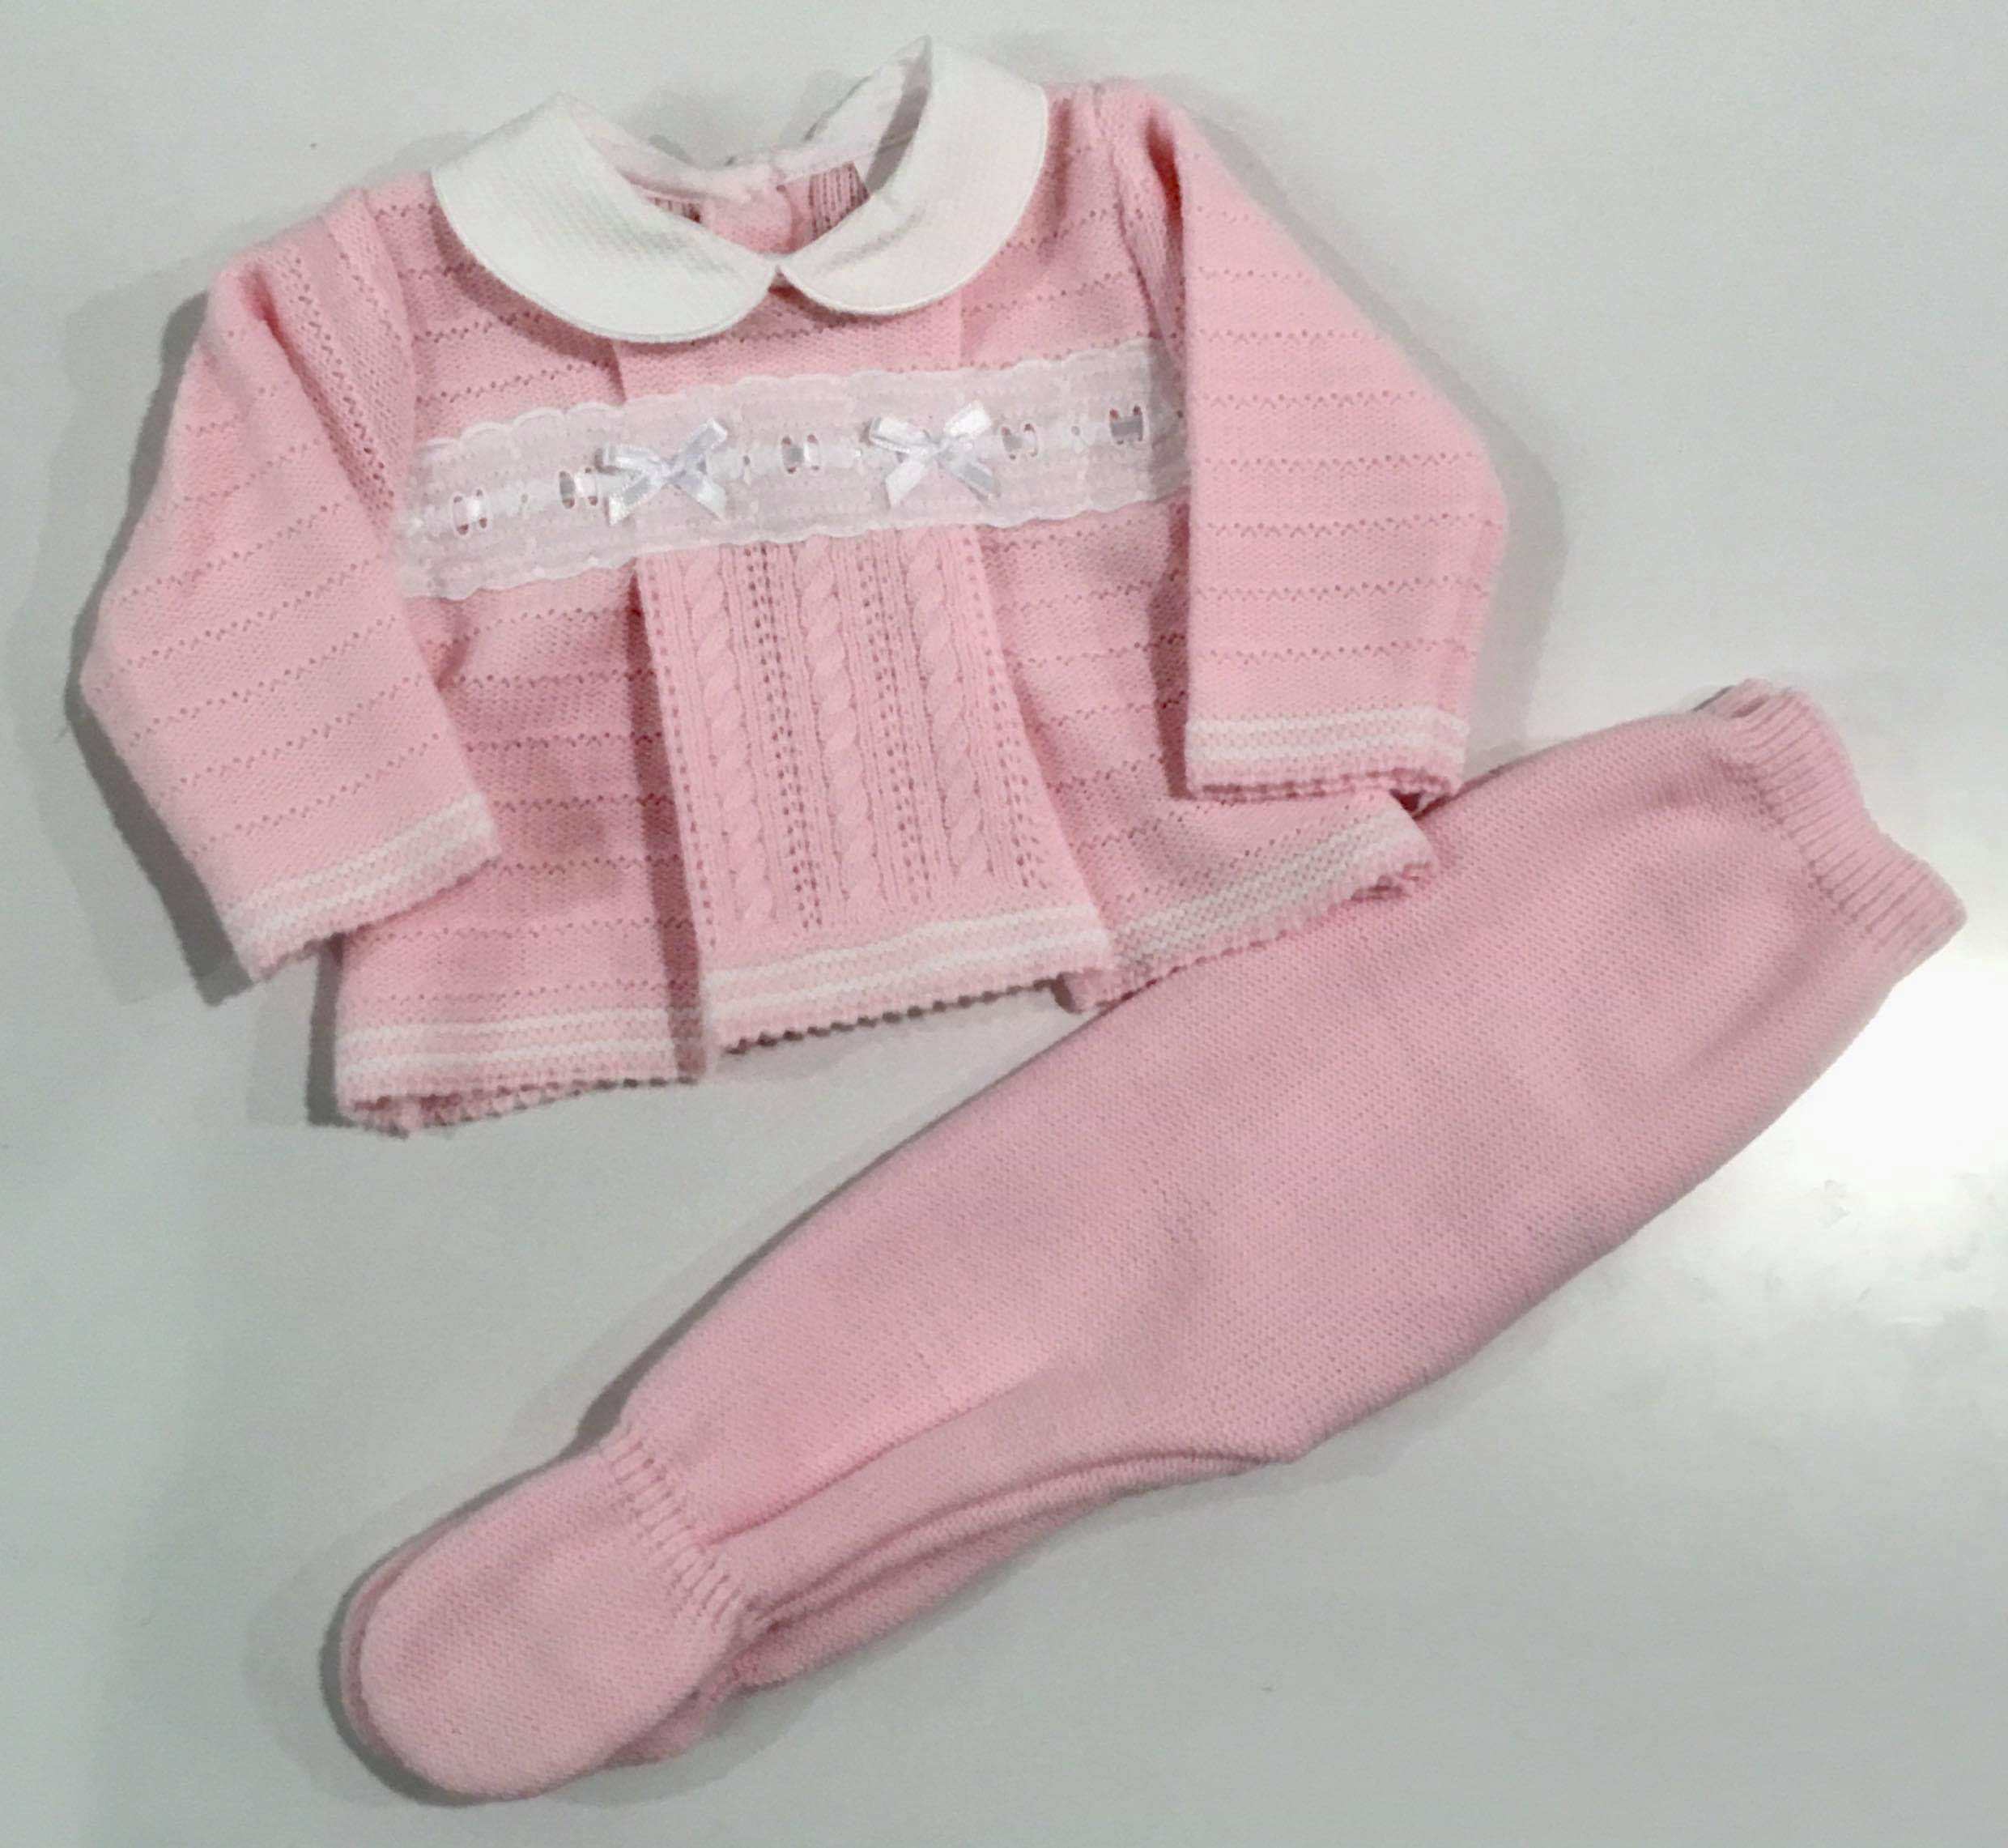 Charlie Knitted Pramsuit Set Pink